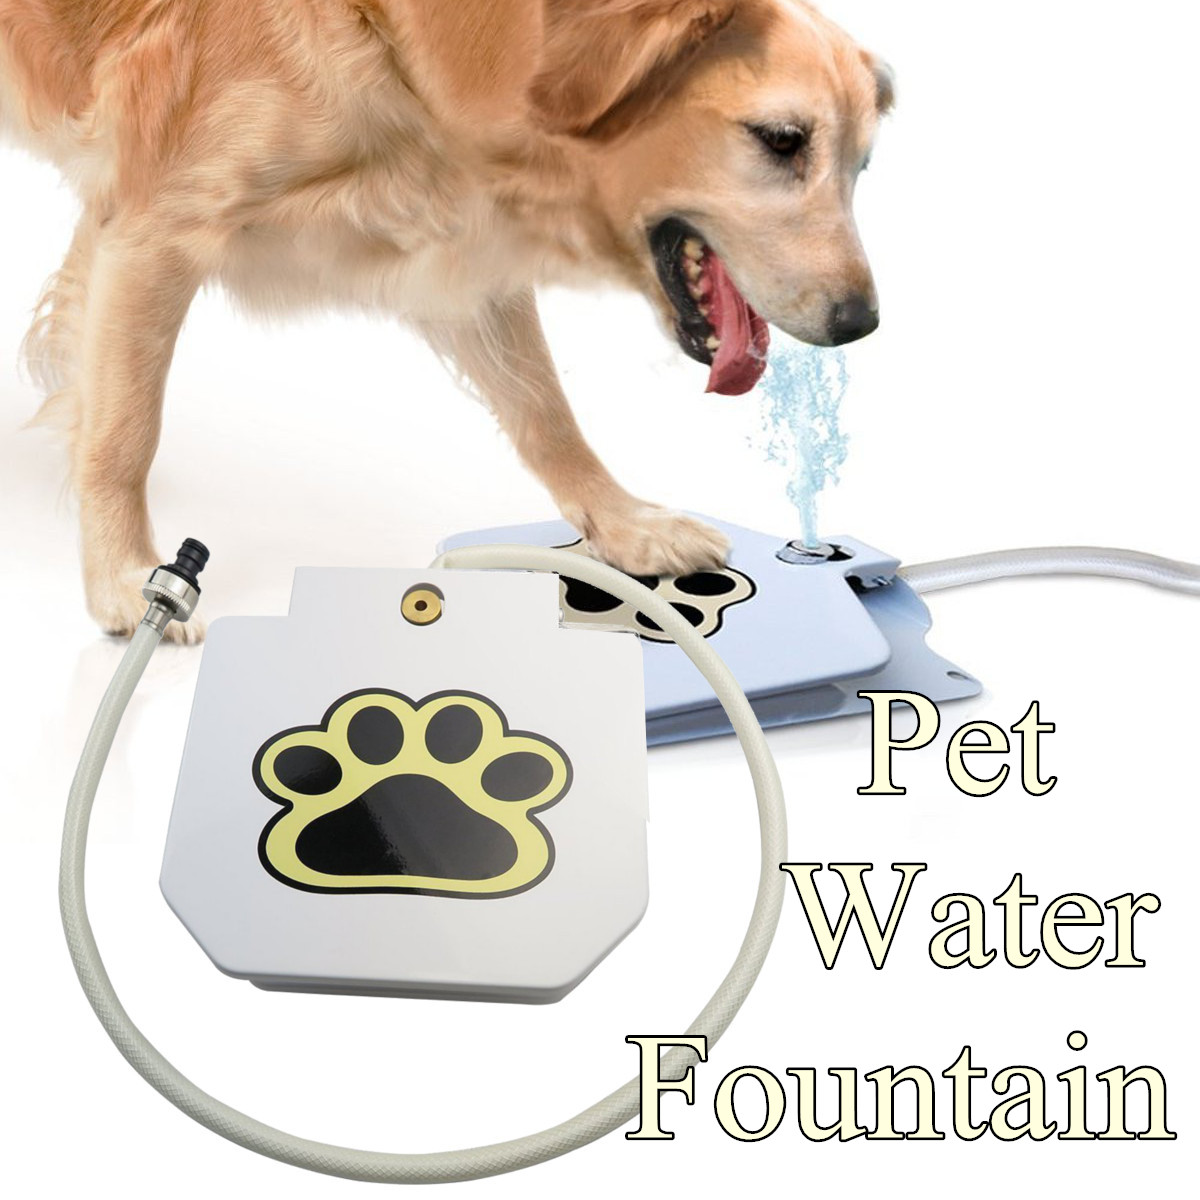 Pet Fountain Automatic Dog Water Feeder Outdoor Pet Activated Drinking Water Fountain Hose Step Spray Foot Pedal Water Bottle